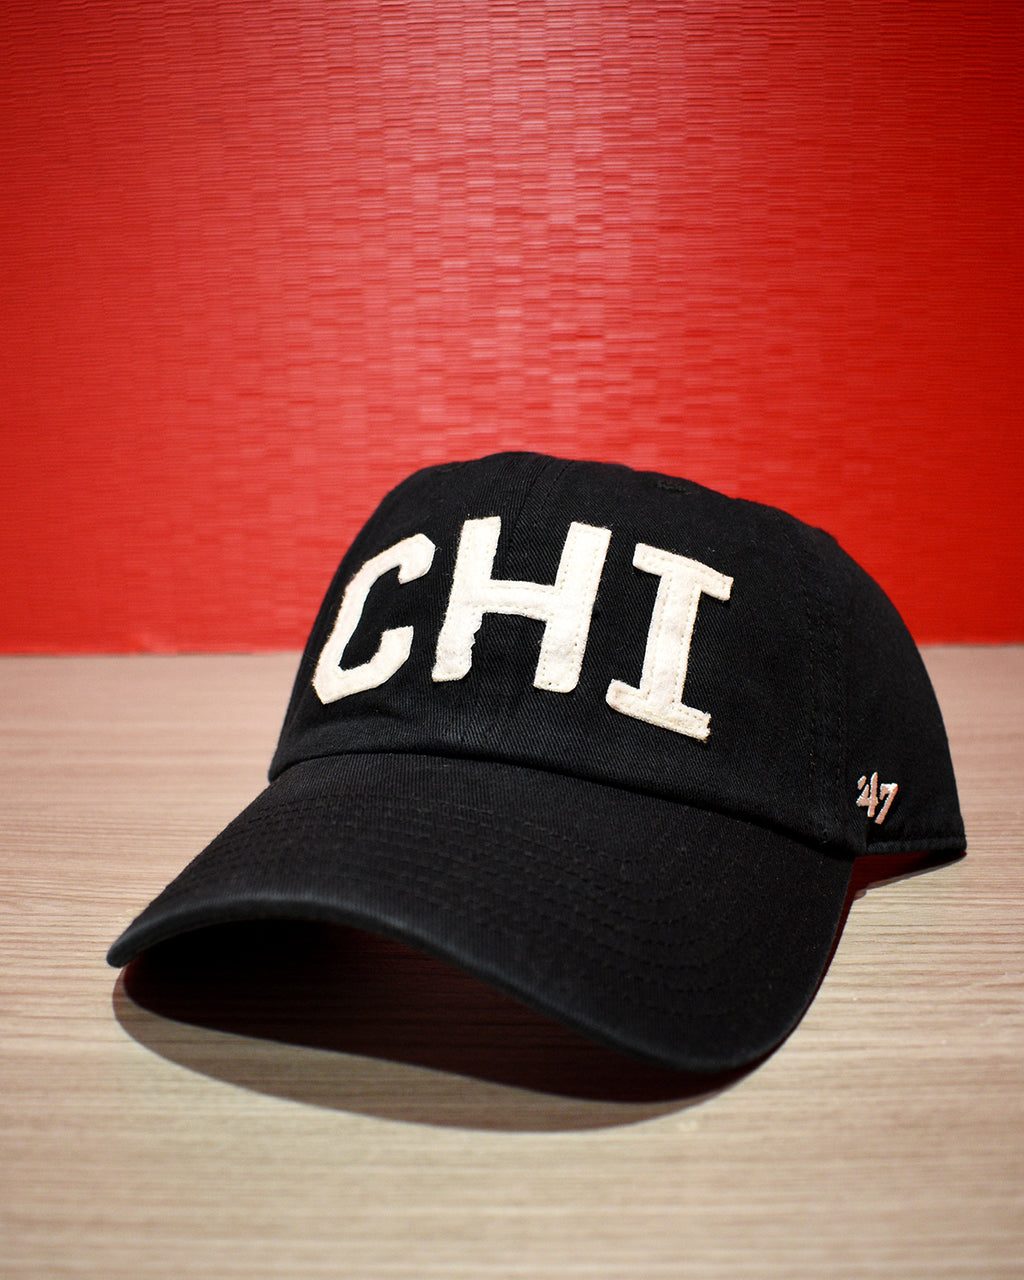 '47 Chi Clean Up Cap